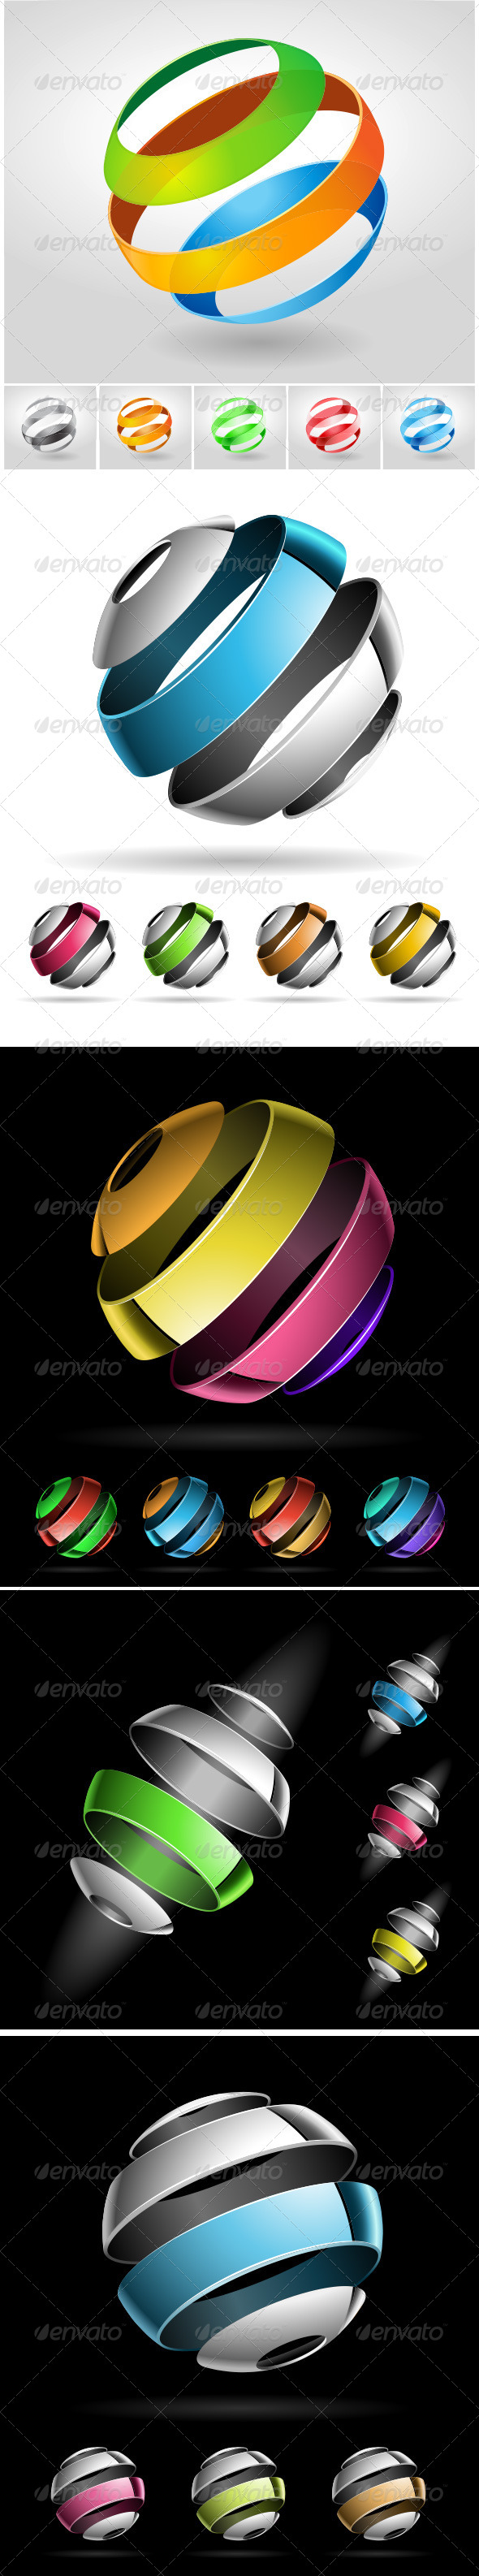 Abstract Sphere Collection - Abstract Conceptual